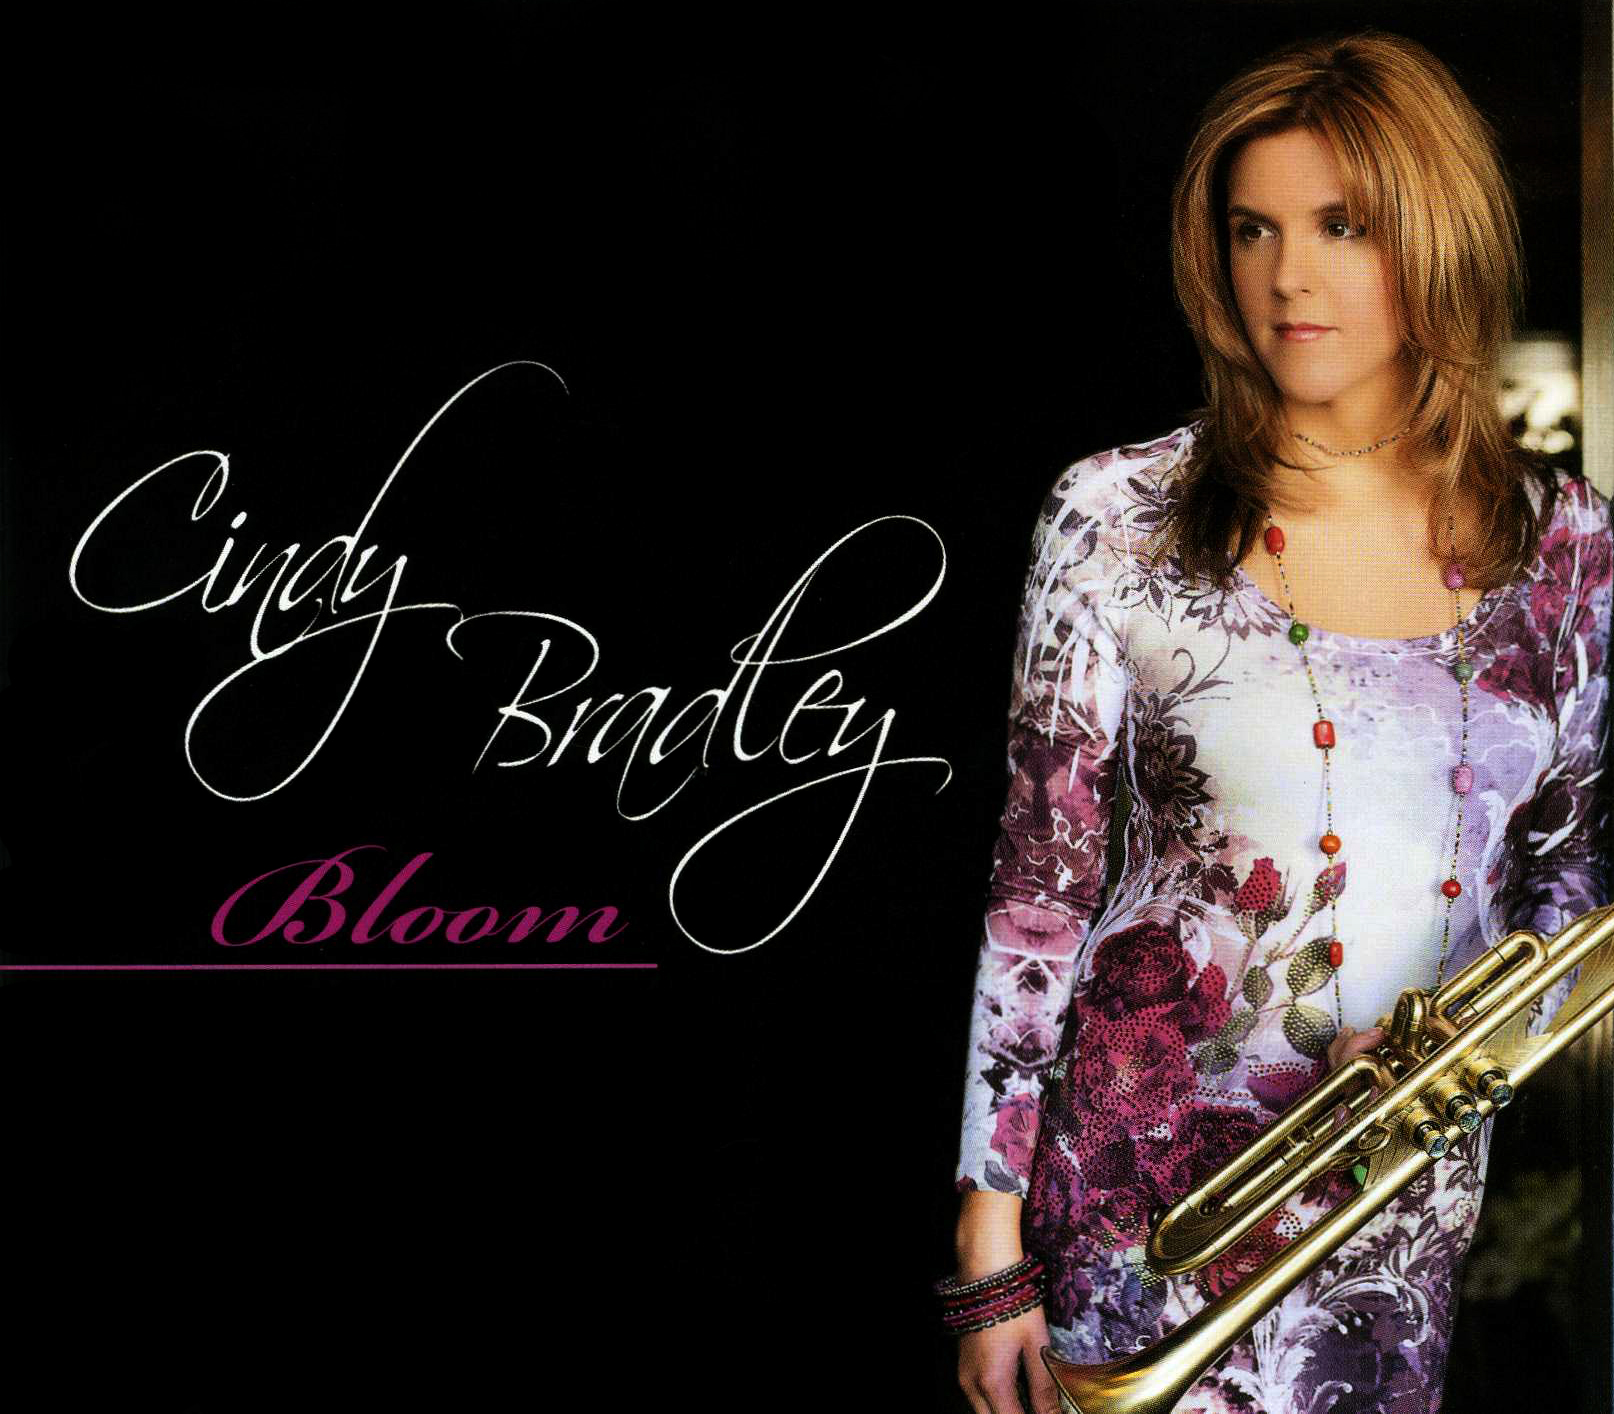 Album Bloom 2009 – Cindy Bradley